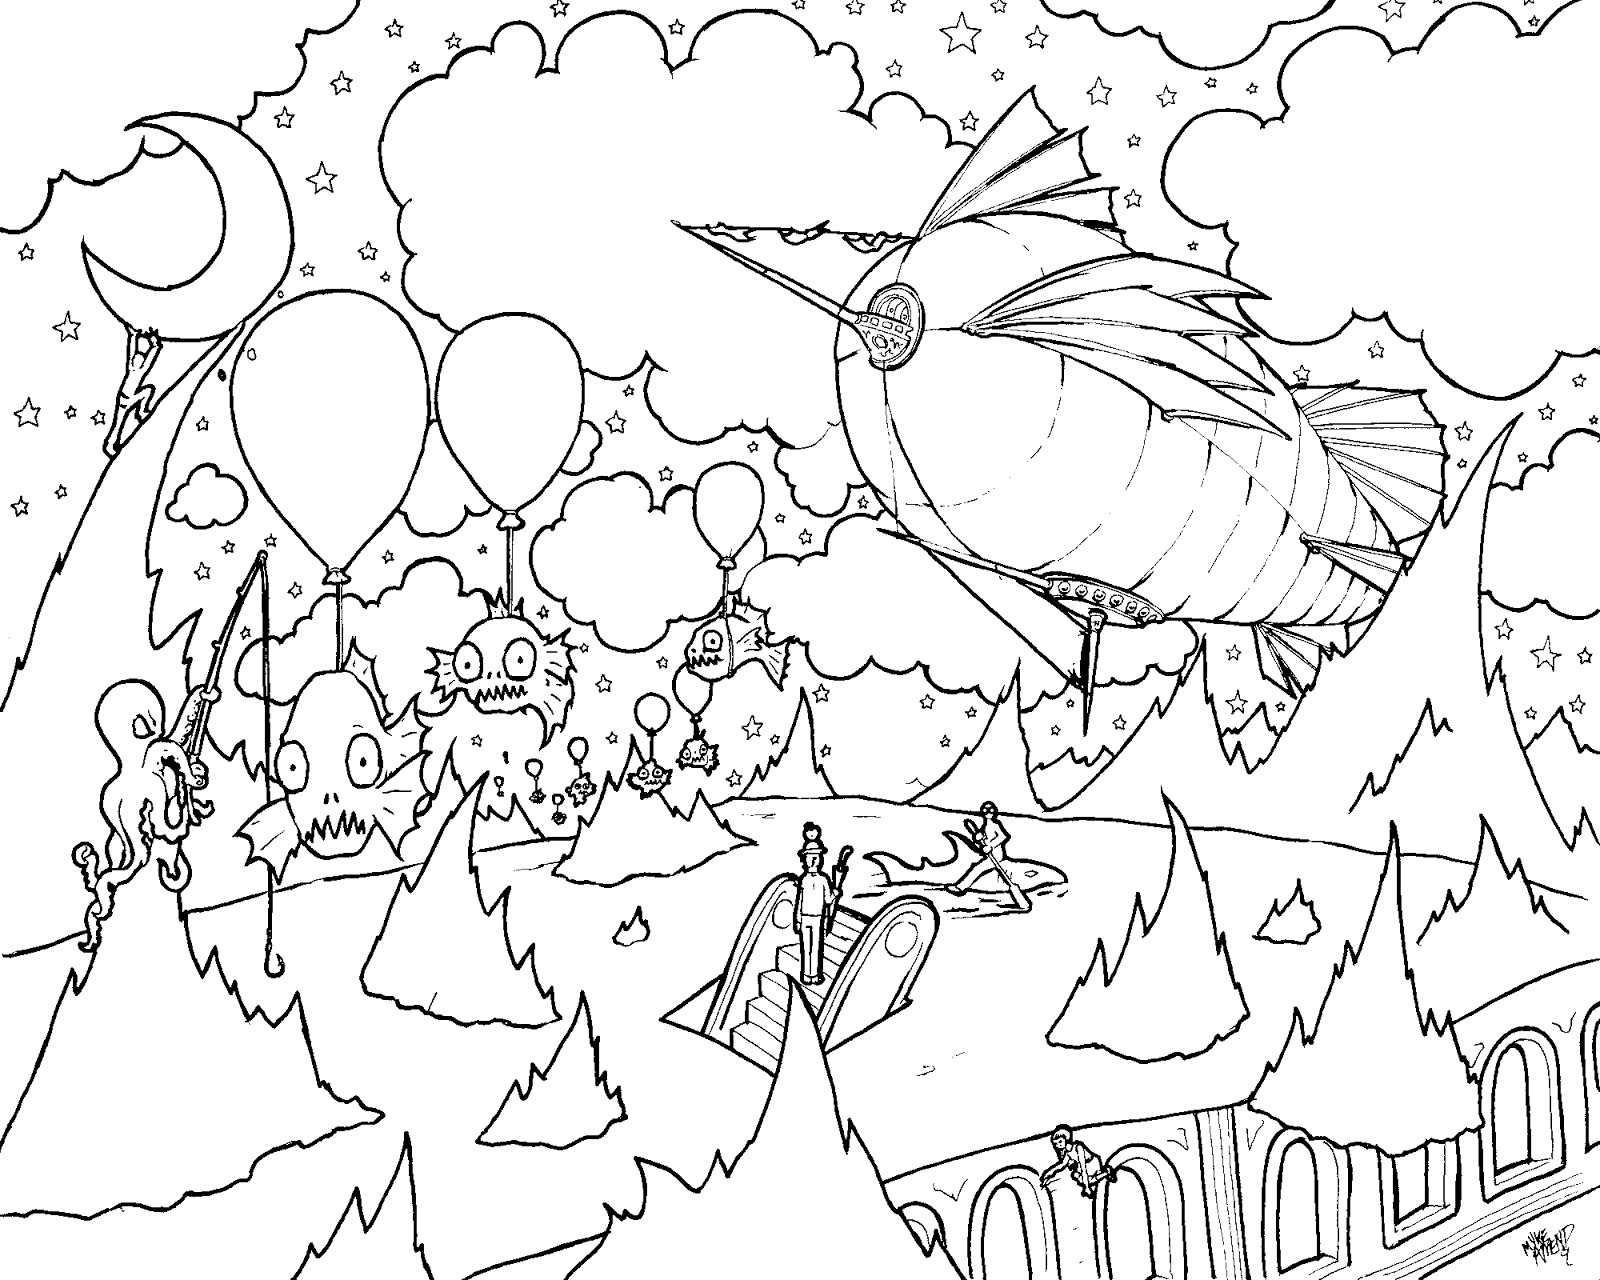 psychedelic coloring pages - photo#40